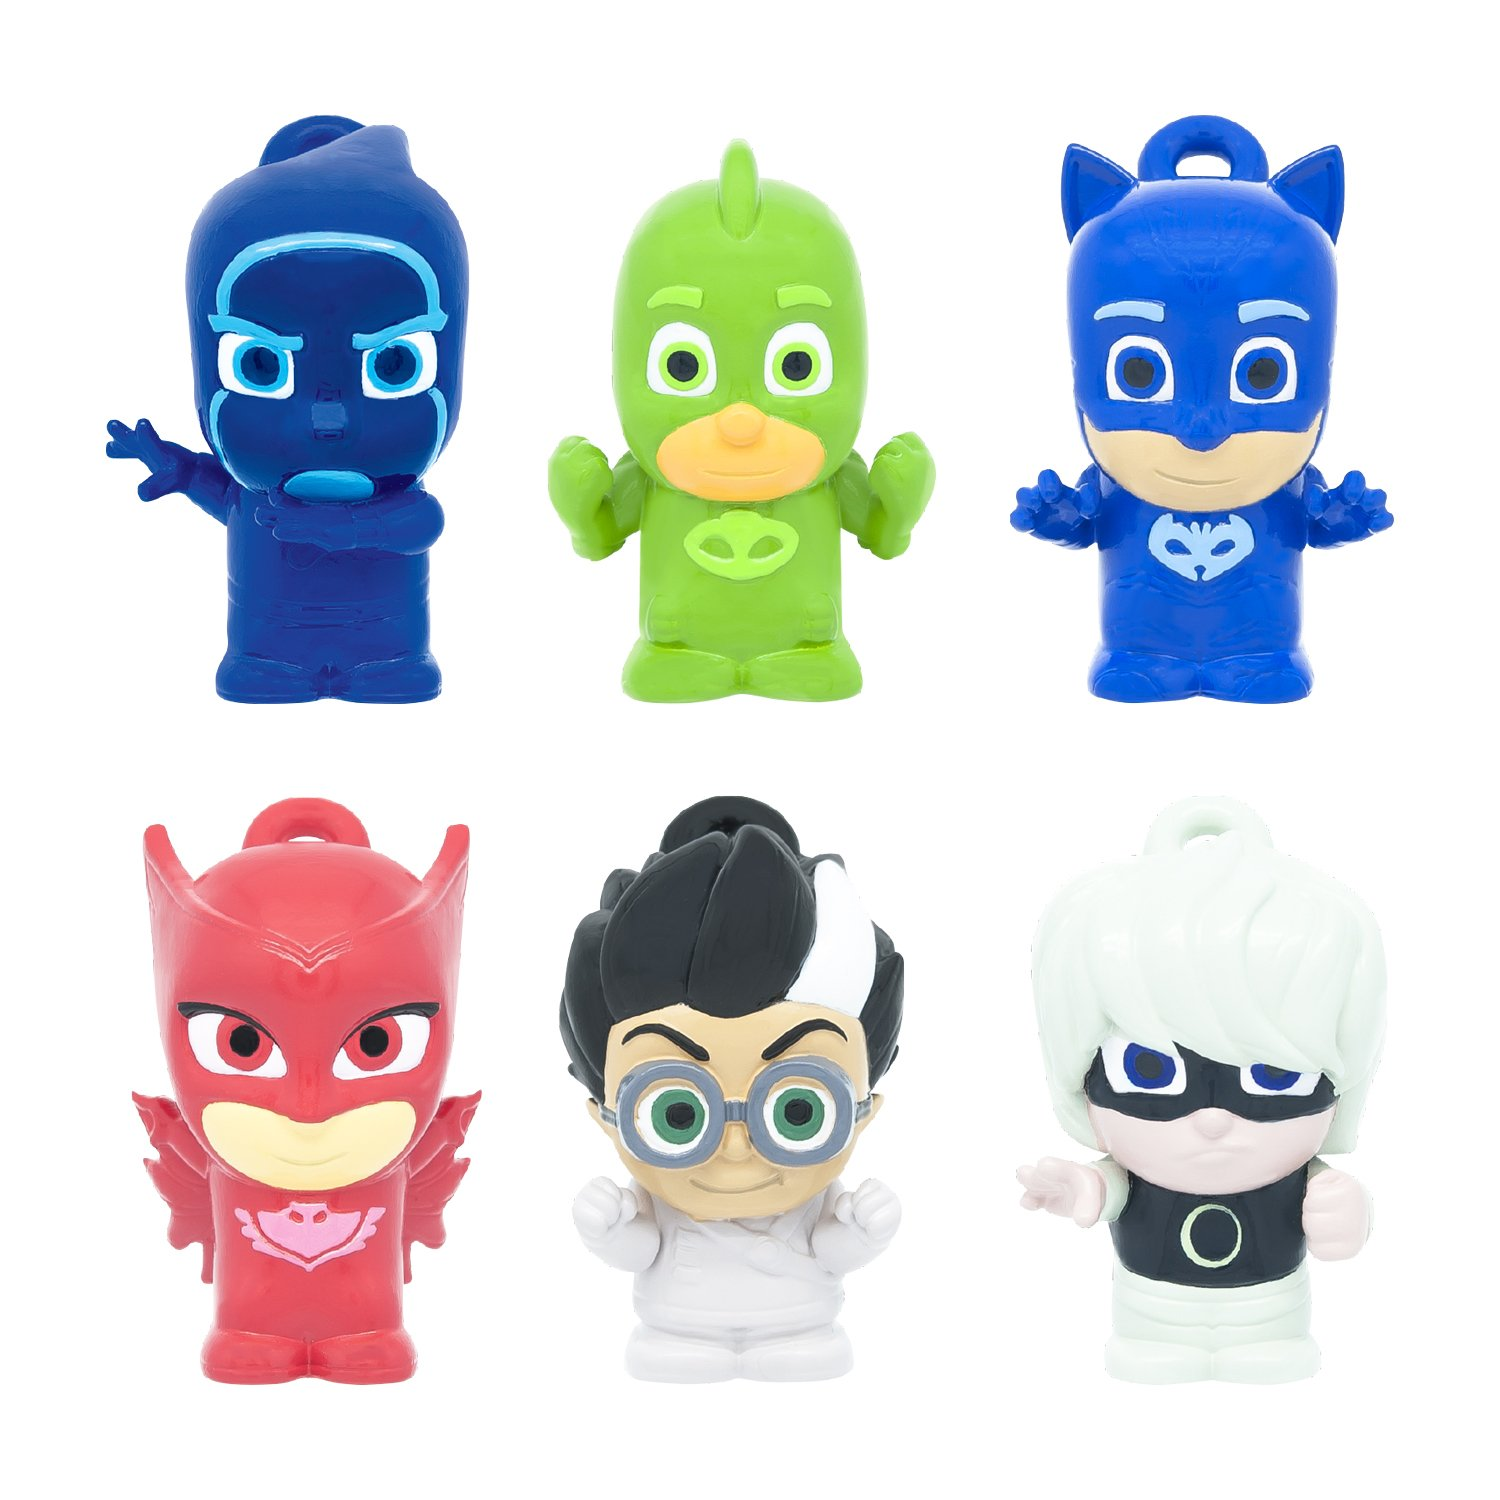 Joy Toy 40771 PJ Masks MICROLITES in BLINDBAG, Colourful